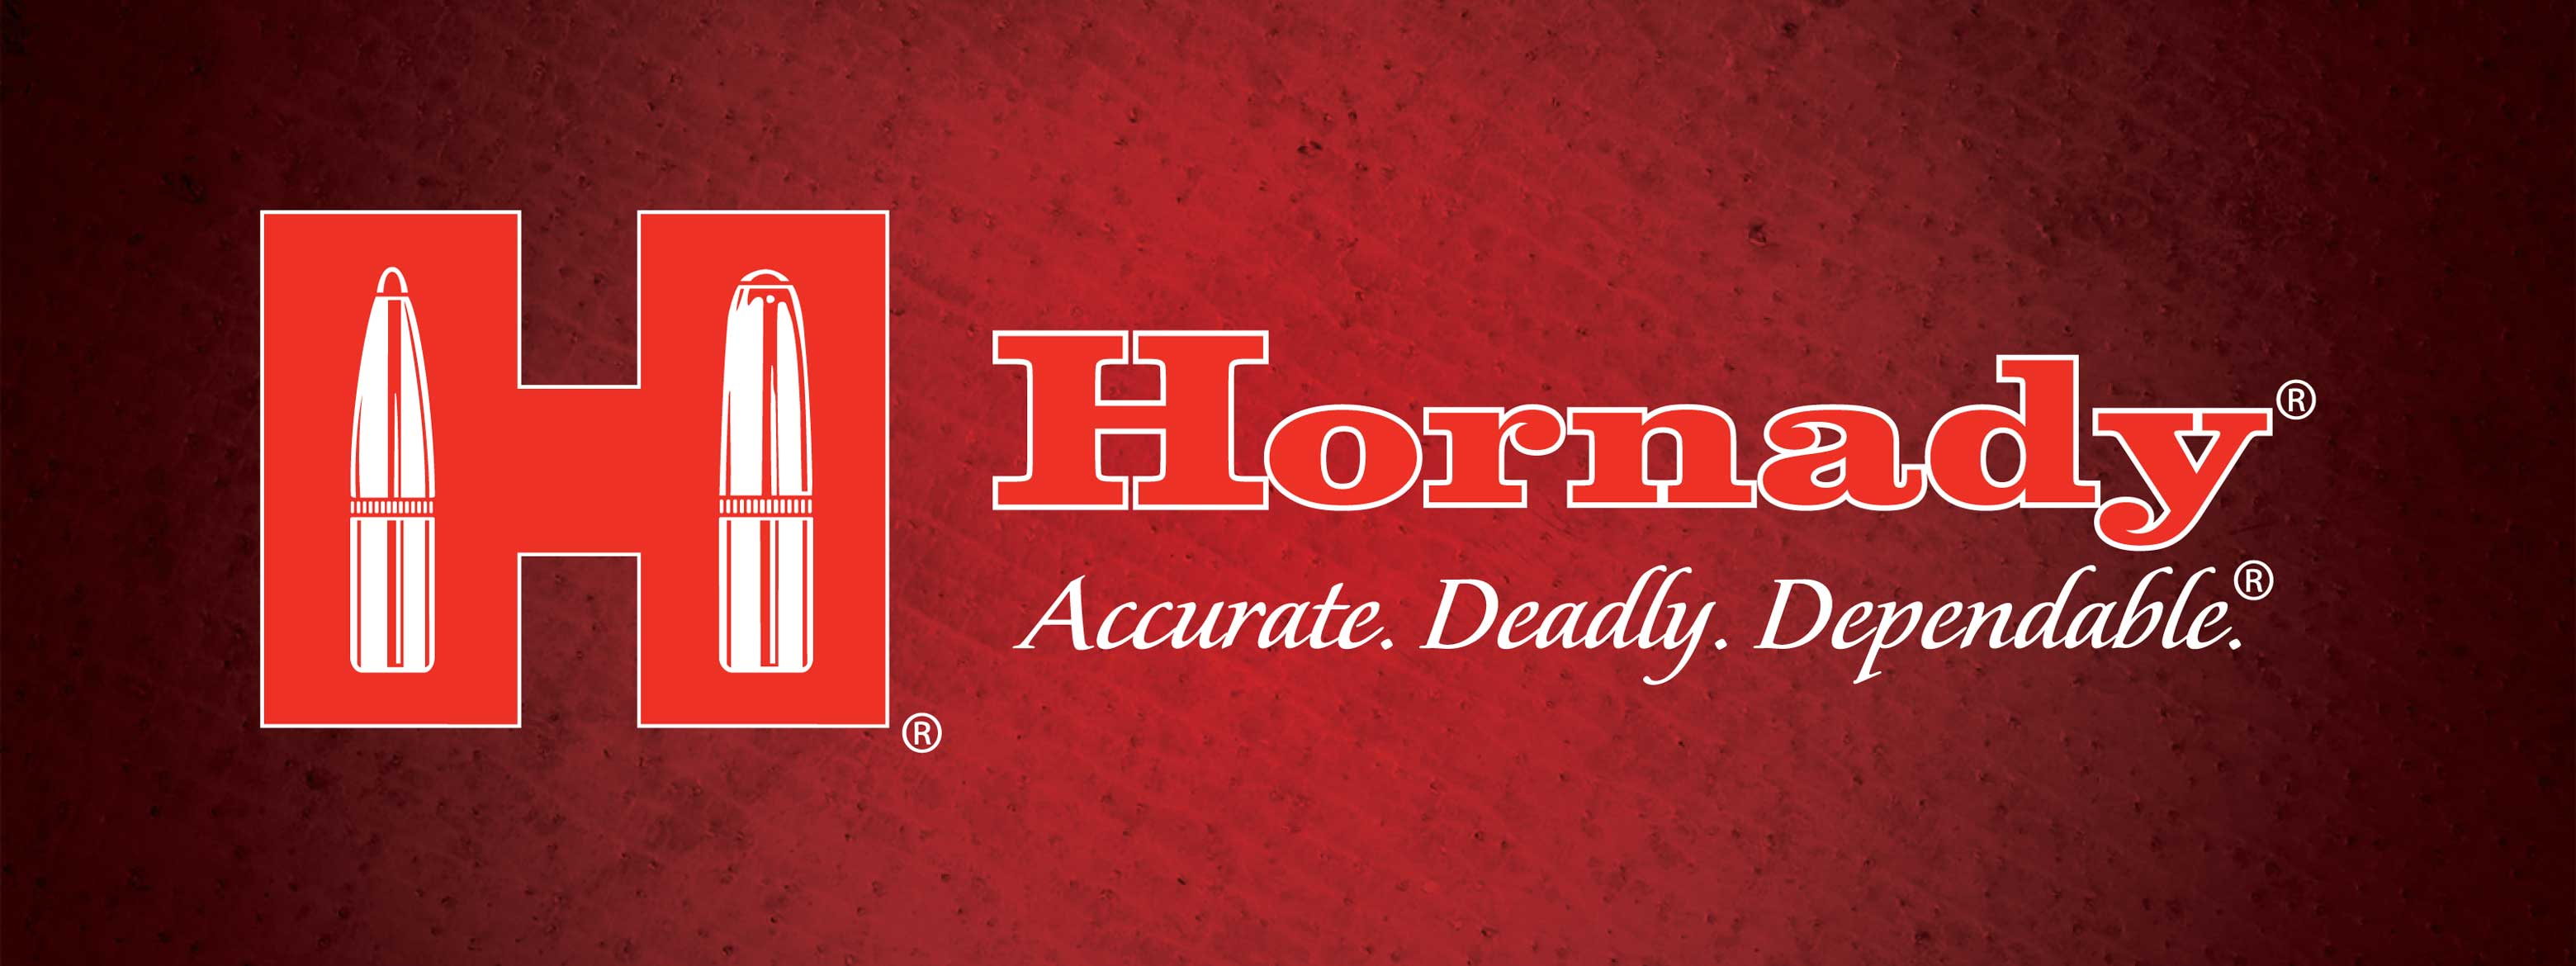 Hornady Reloading Manuals Bullets Rifle Ammo Midwayusa